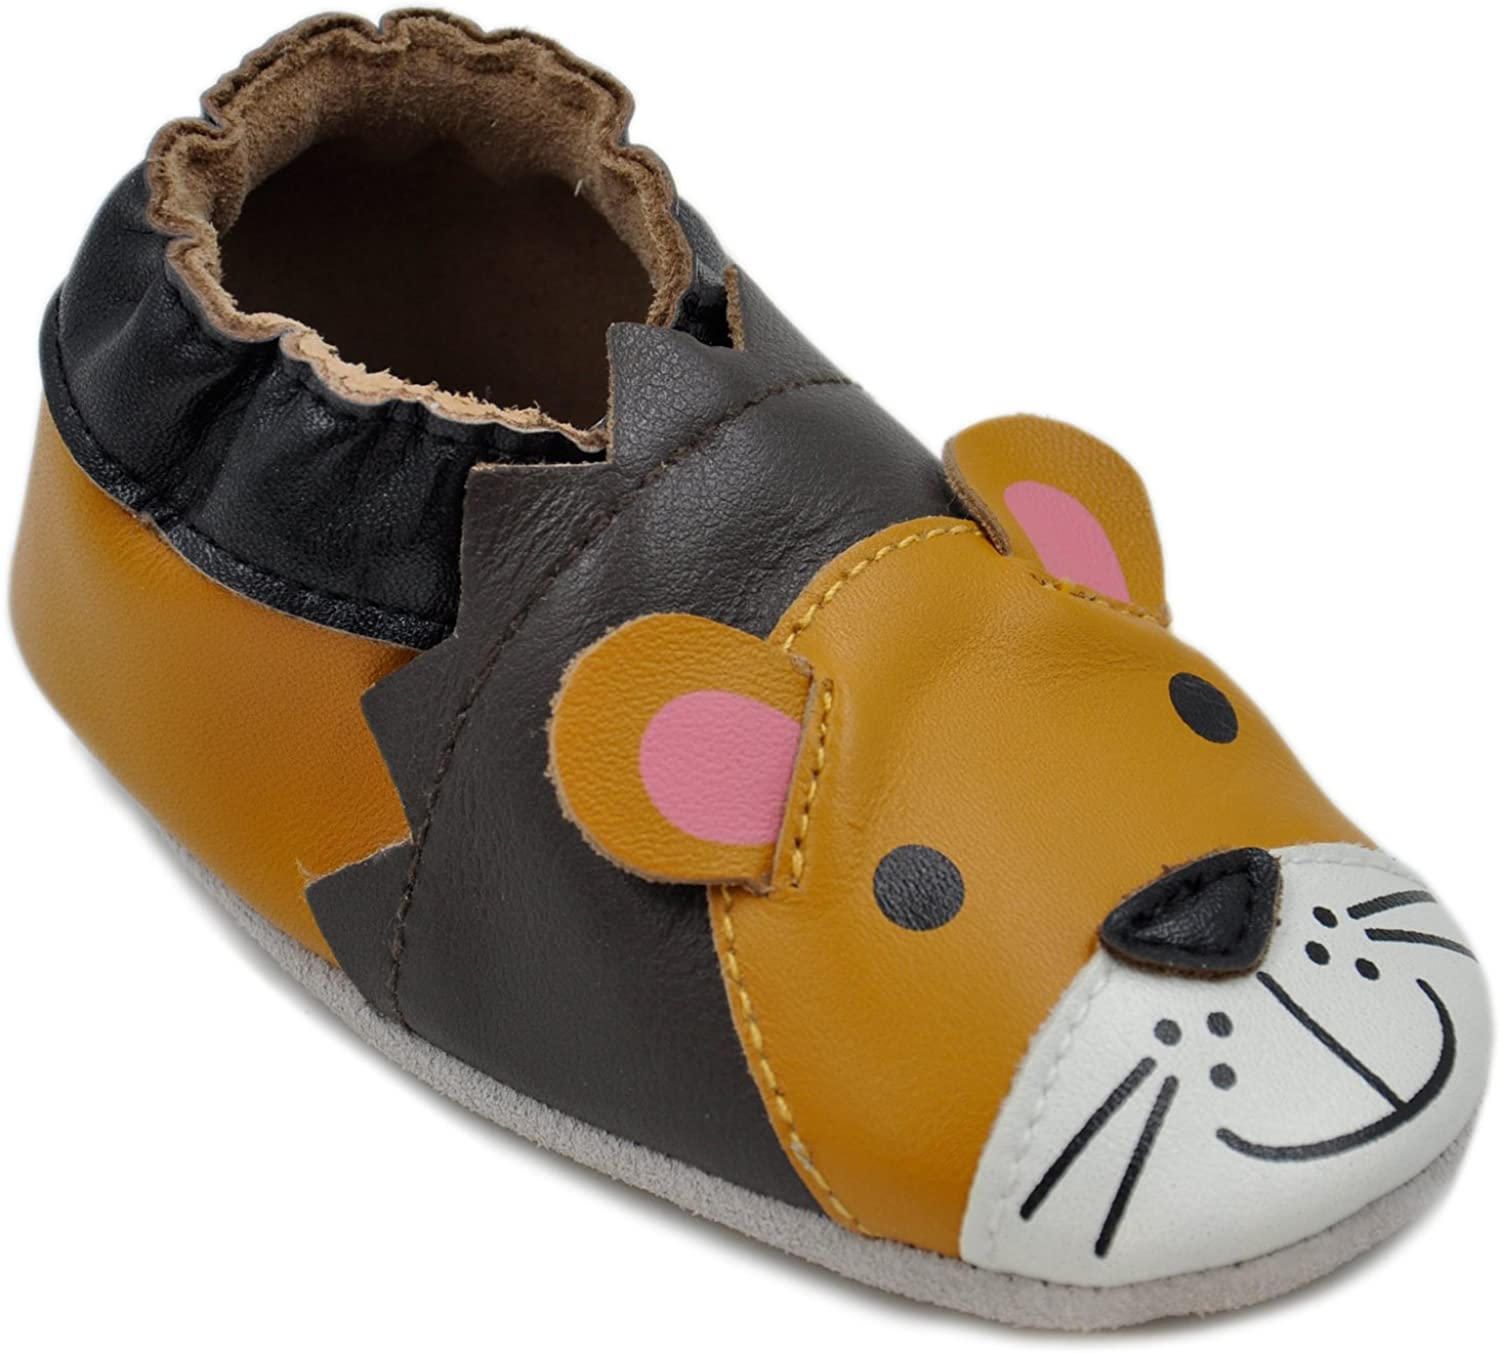 Momo Baby Boys Soft Sole Leather Toddler First It is very popular Walker 2021 new Shoes Crib